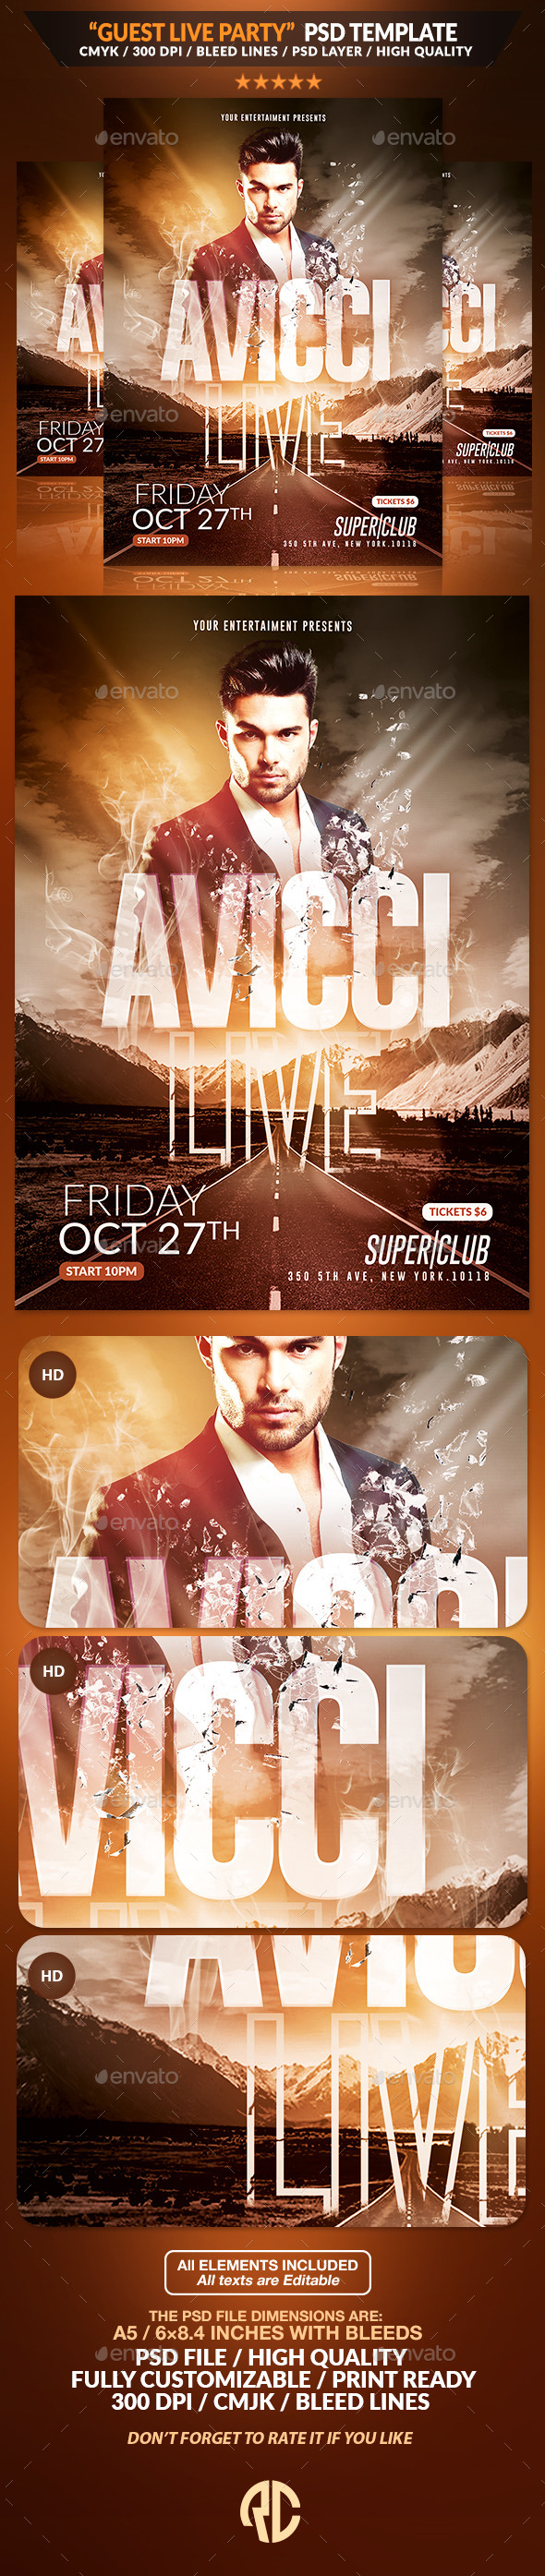 Guest Live Party | Psd Flyer Template - Events Flyers